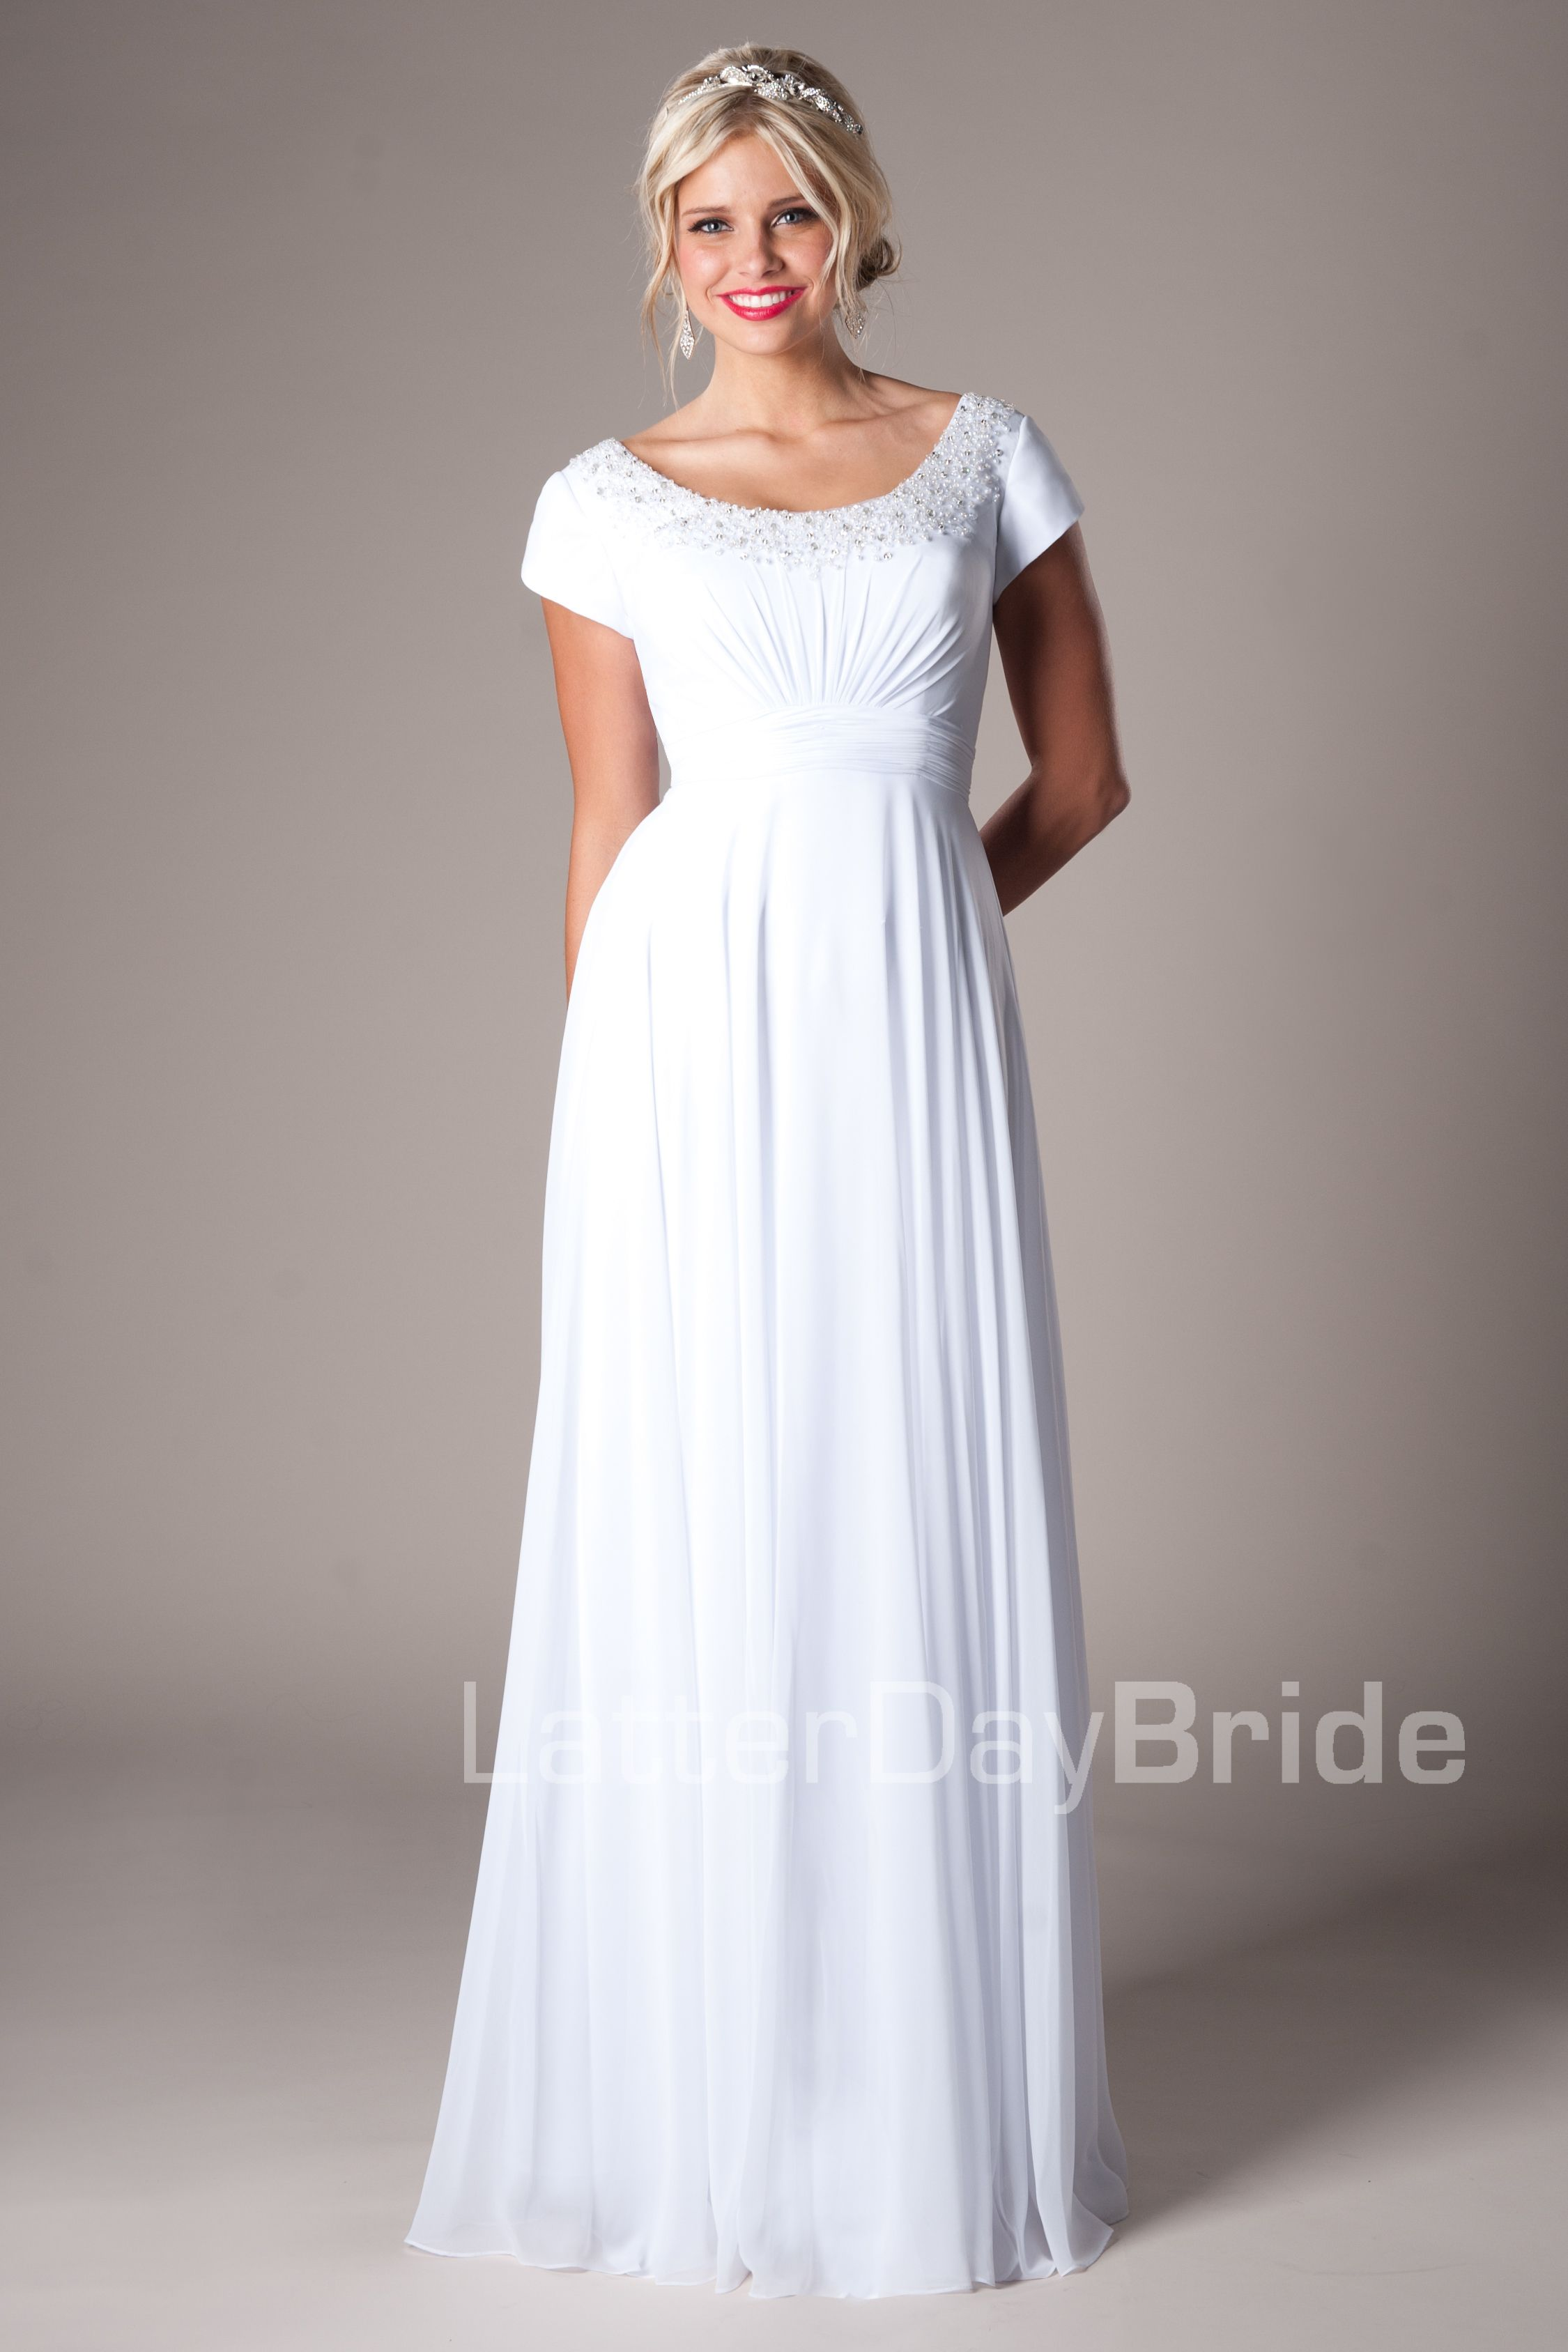 f860a91c628a Modest Wedding Dresses : Mormon LDS Temple Marriage - Alcott This is  another favorite for graduation dresses! :)